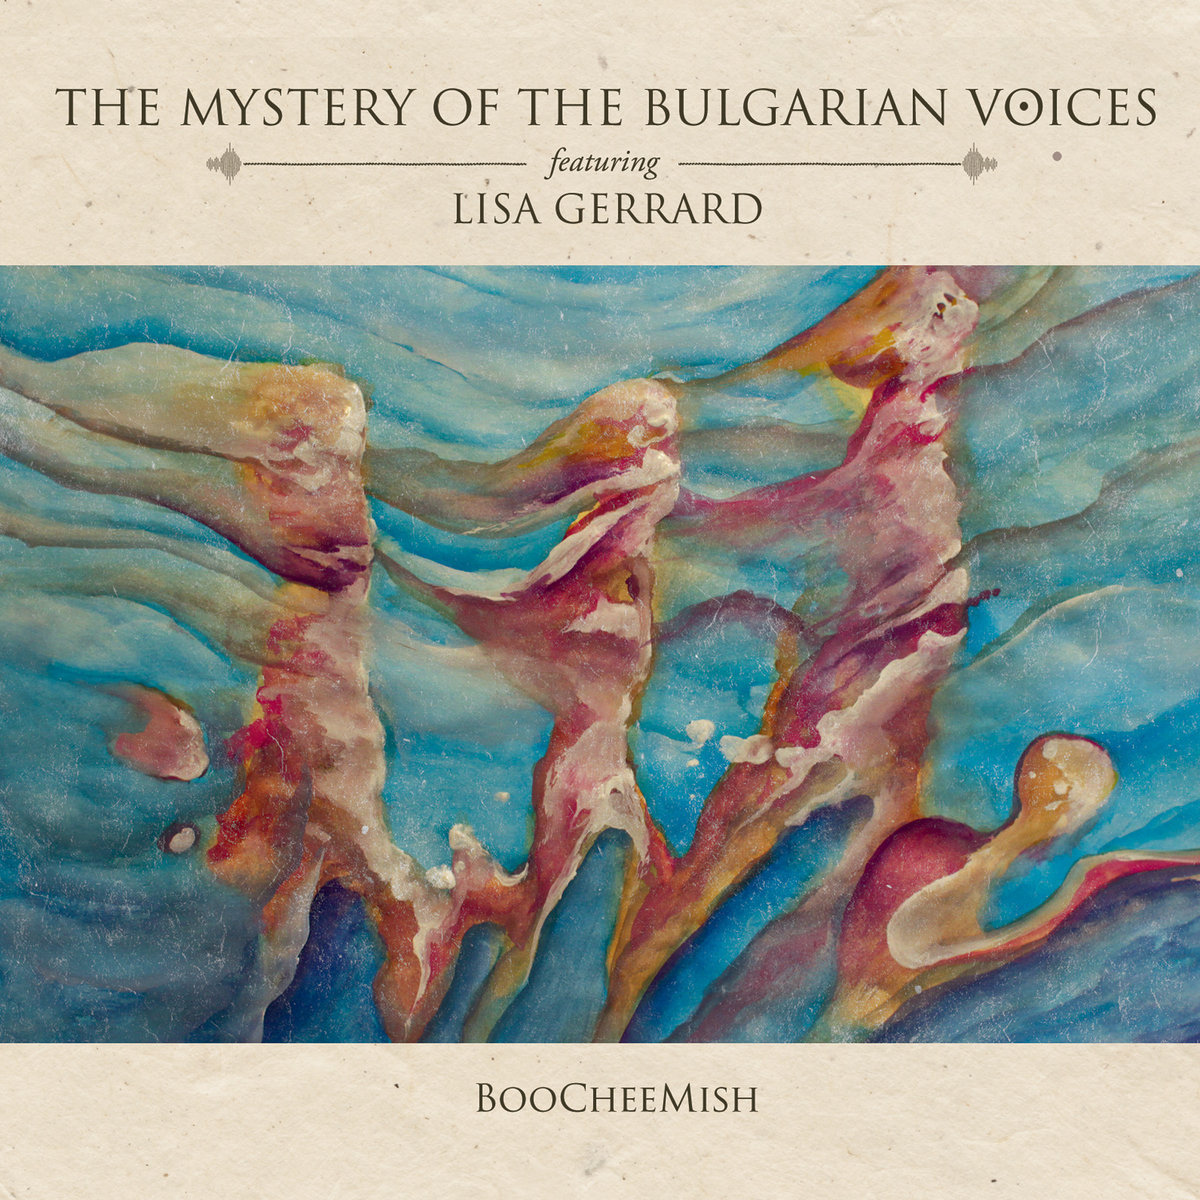 Album Review: The Mystery of the Bulgarian Voices